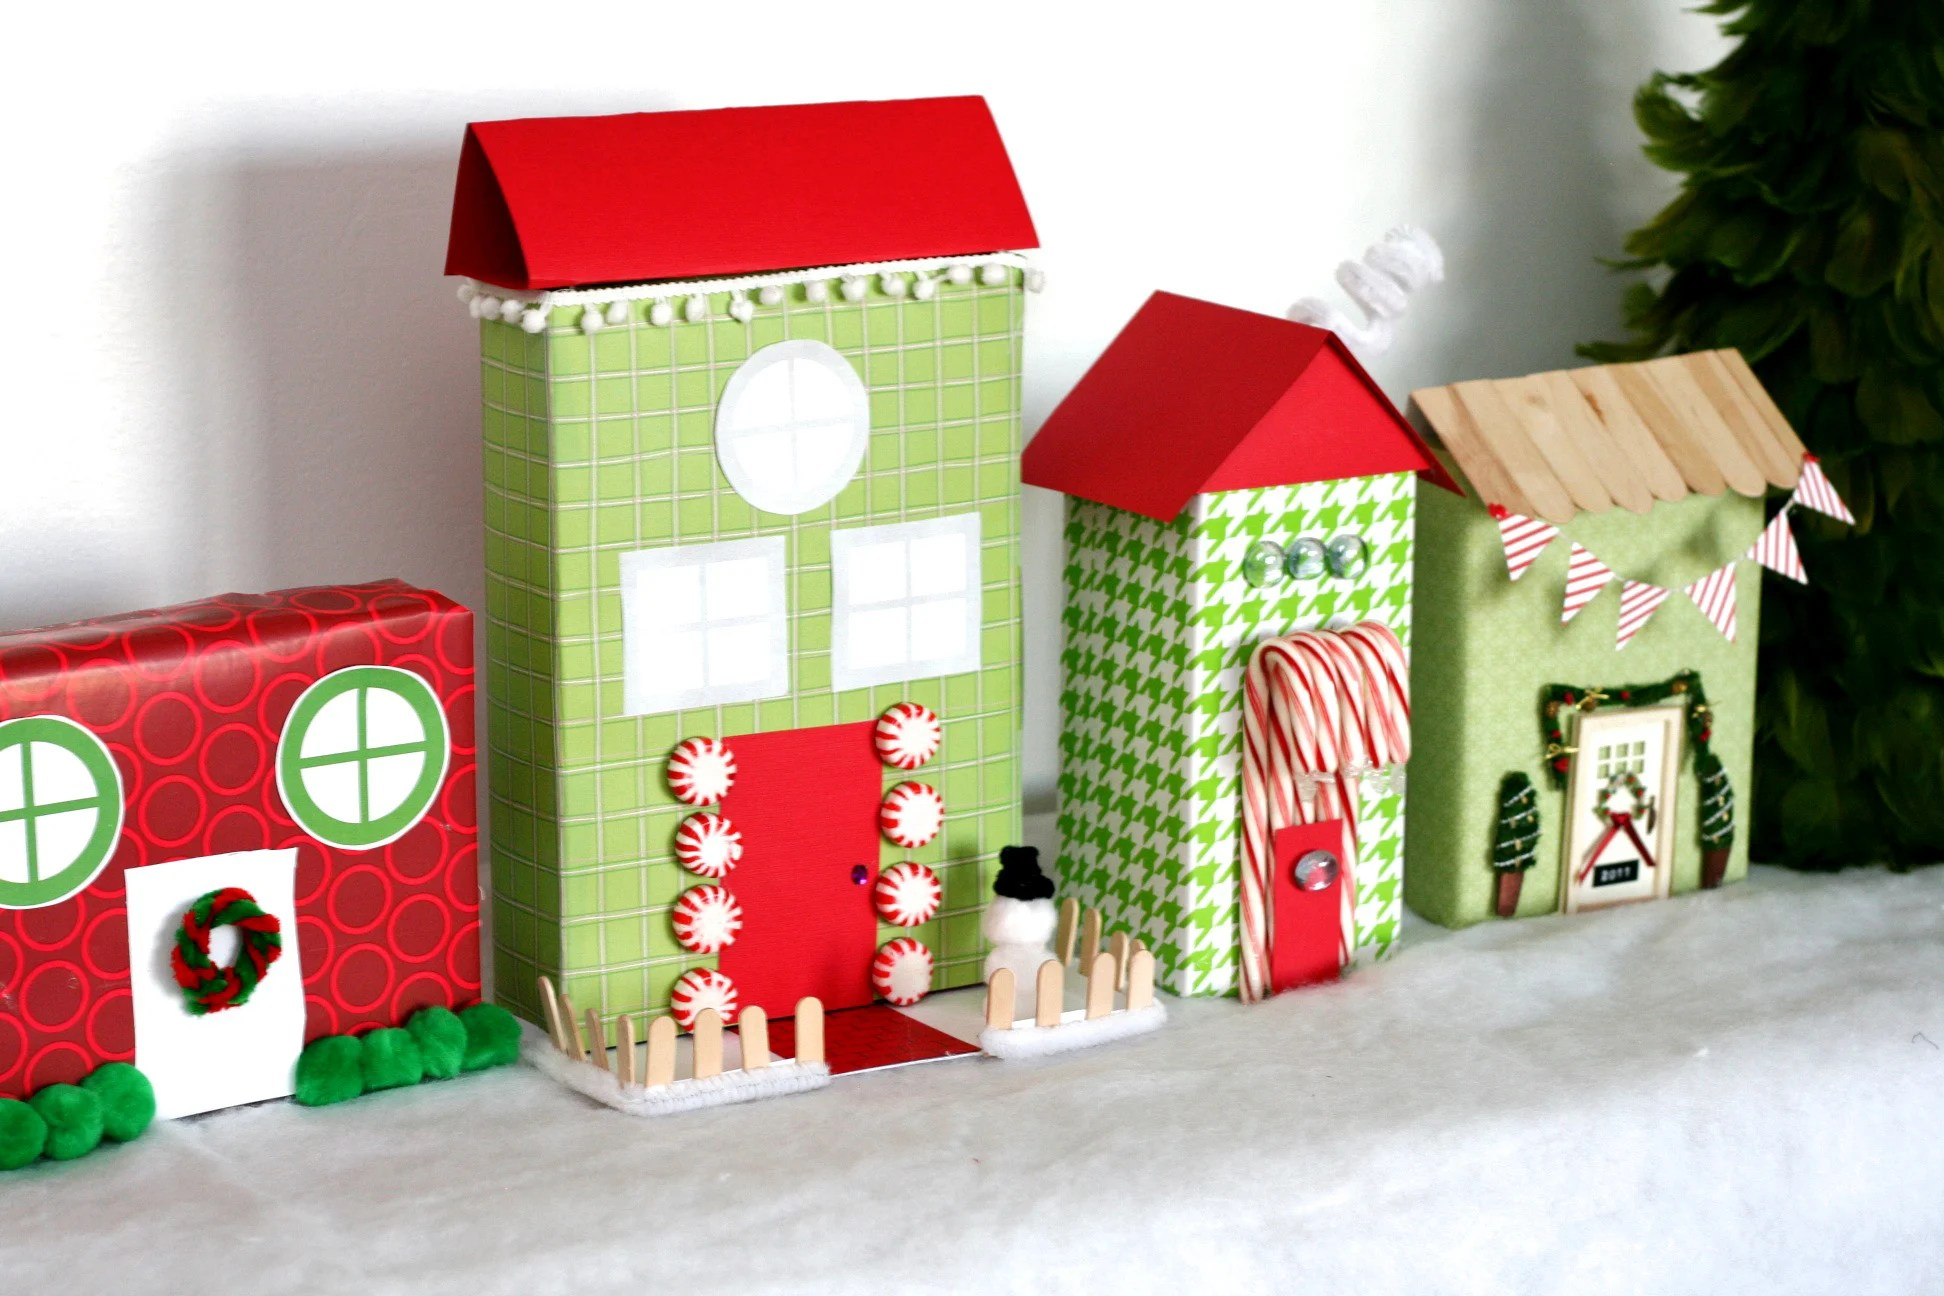 Popular Village Recycled Village Paging Supermom Village Houses Diy Village Houses Police Station curbed Christmas Village Houses